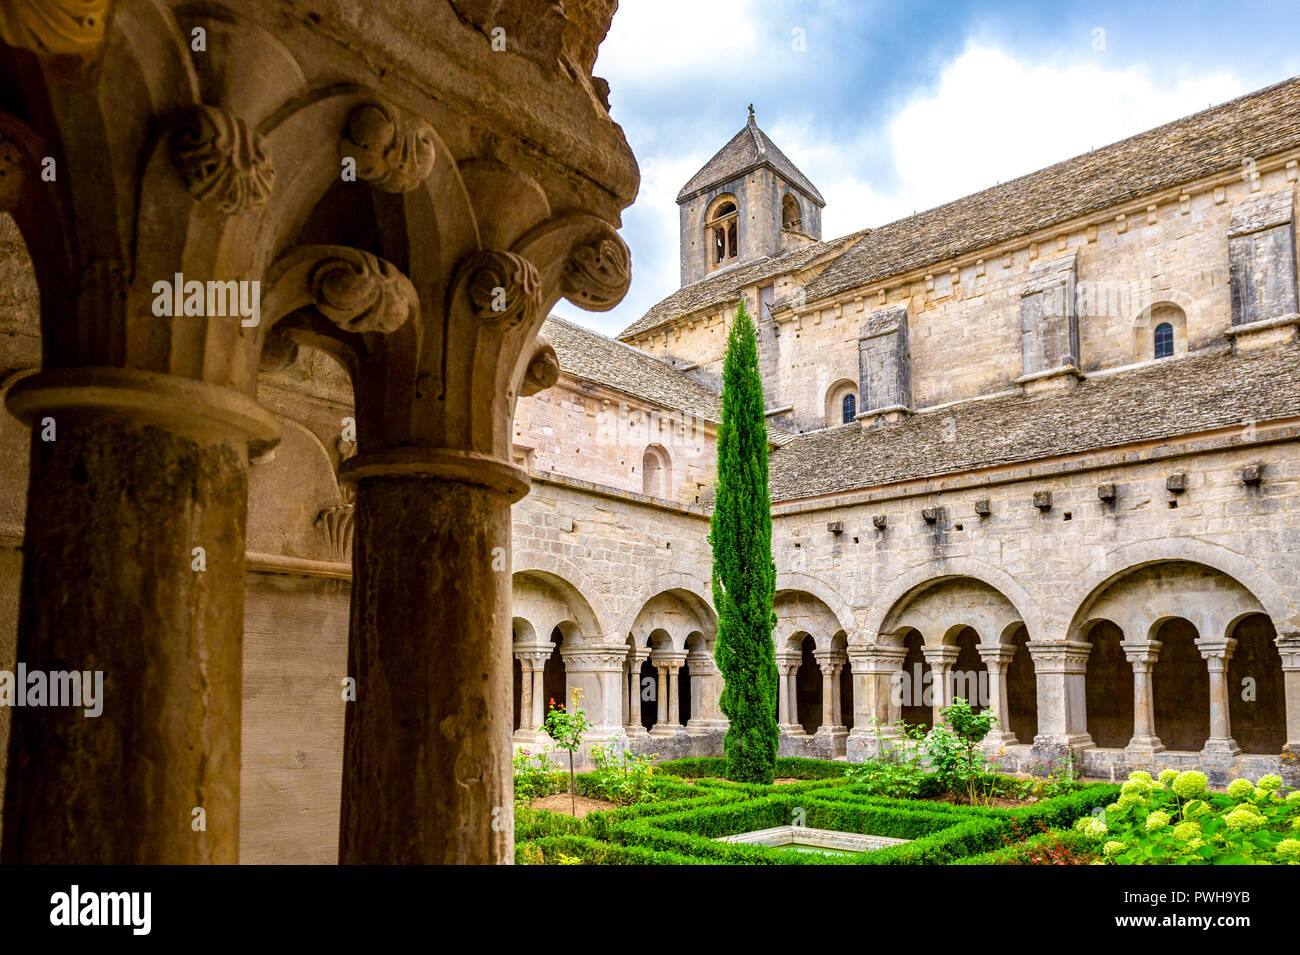 France. Vaucluse (84). Common Gordes. Regional Natural Park of Luberon. Abbey Notre Dame de Senanque dating from the twelfth century. The cloister - Stock Image